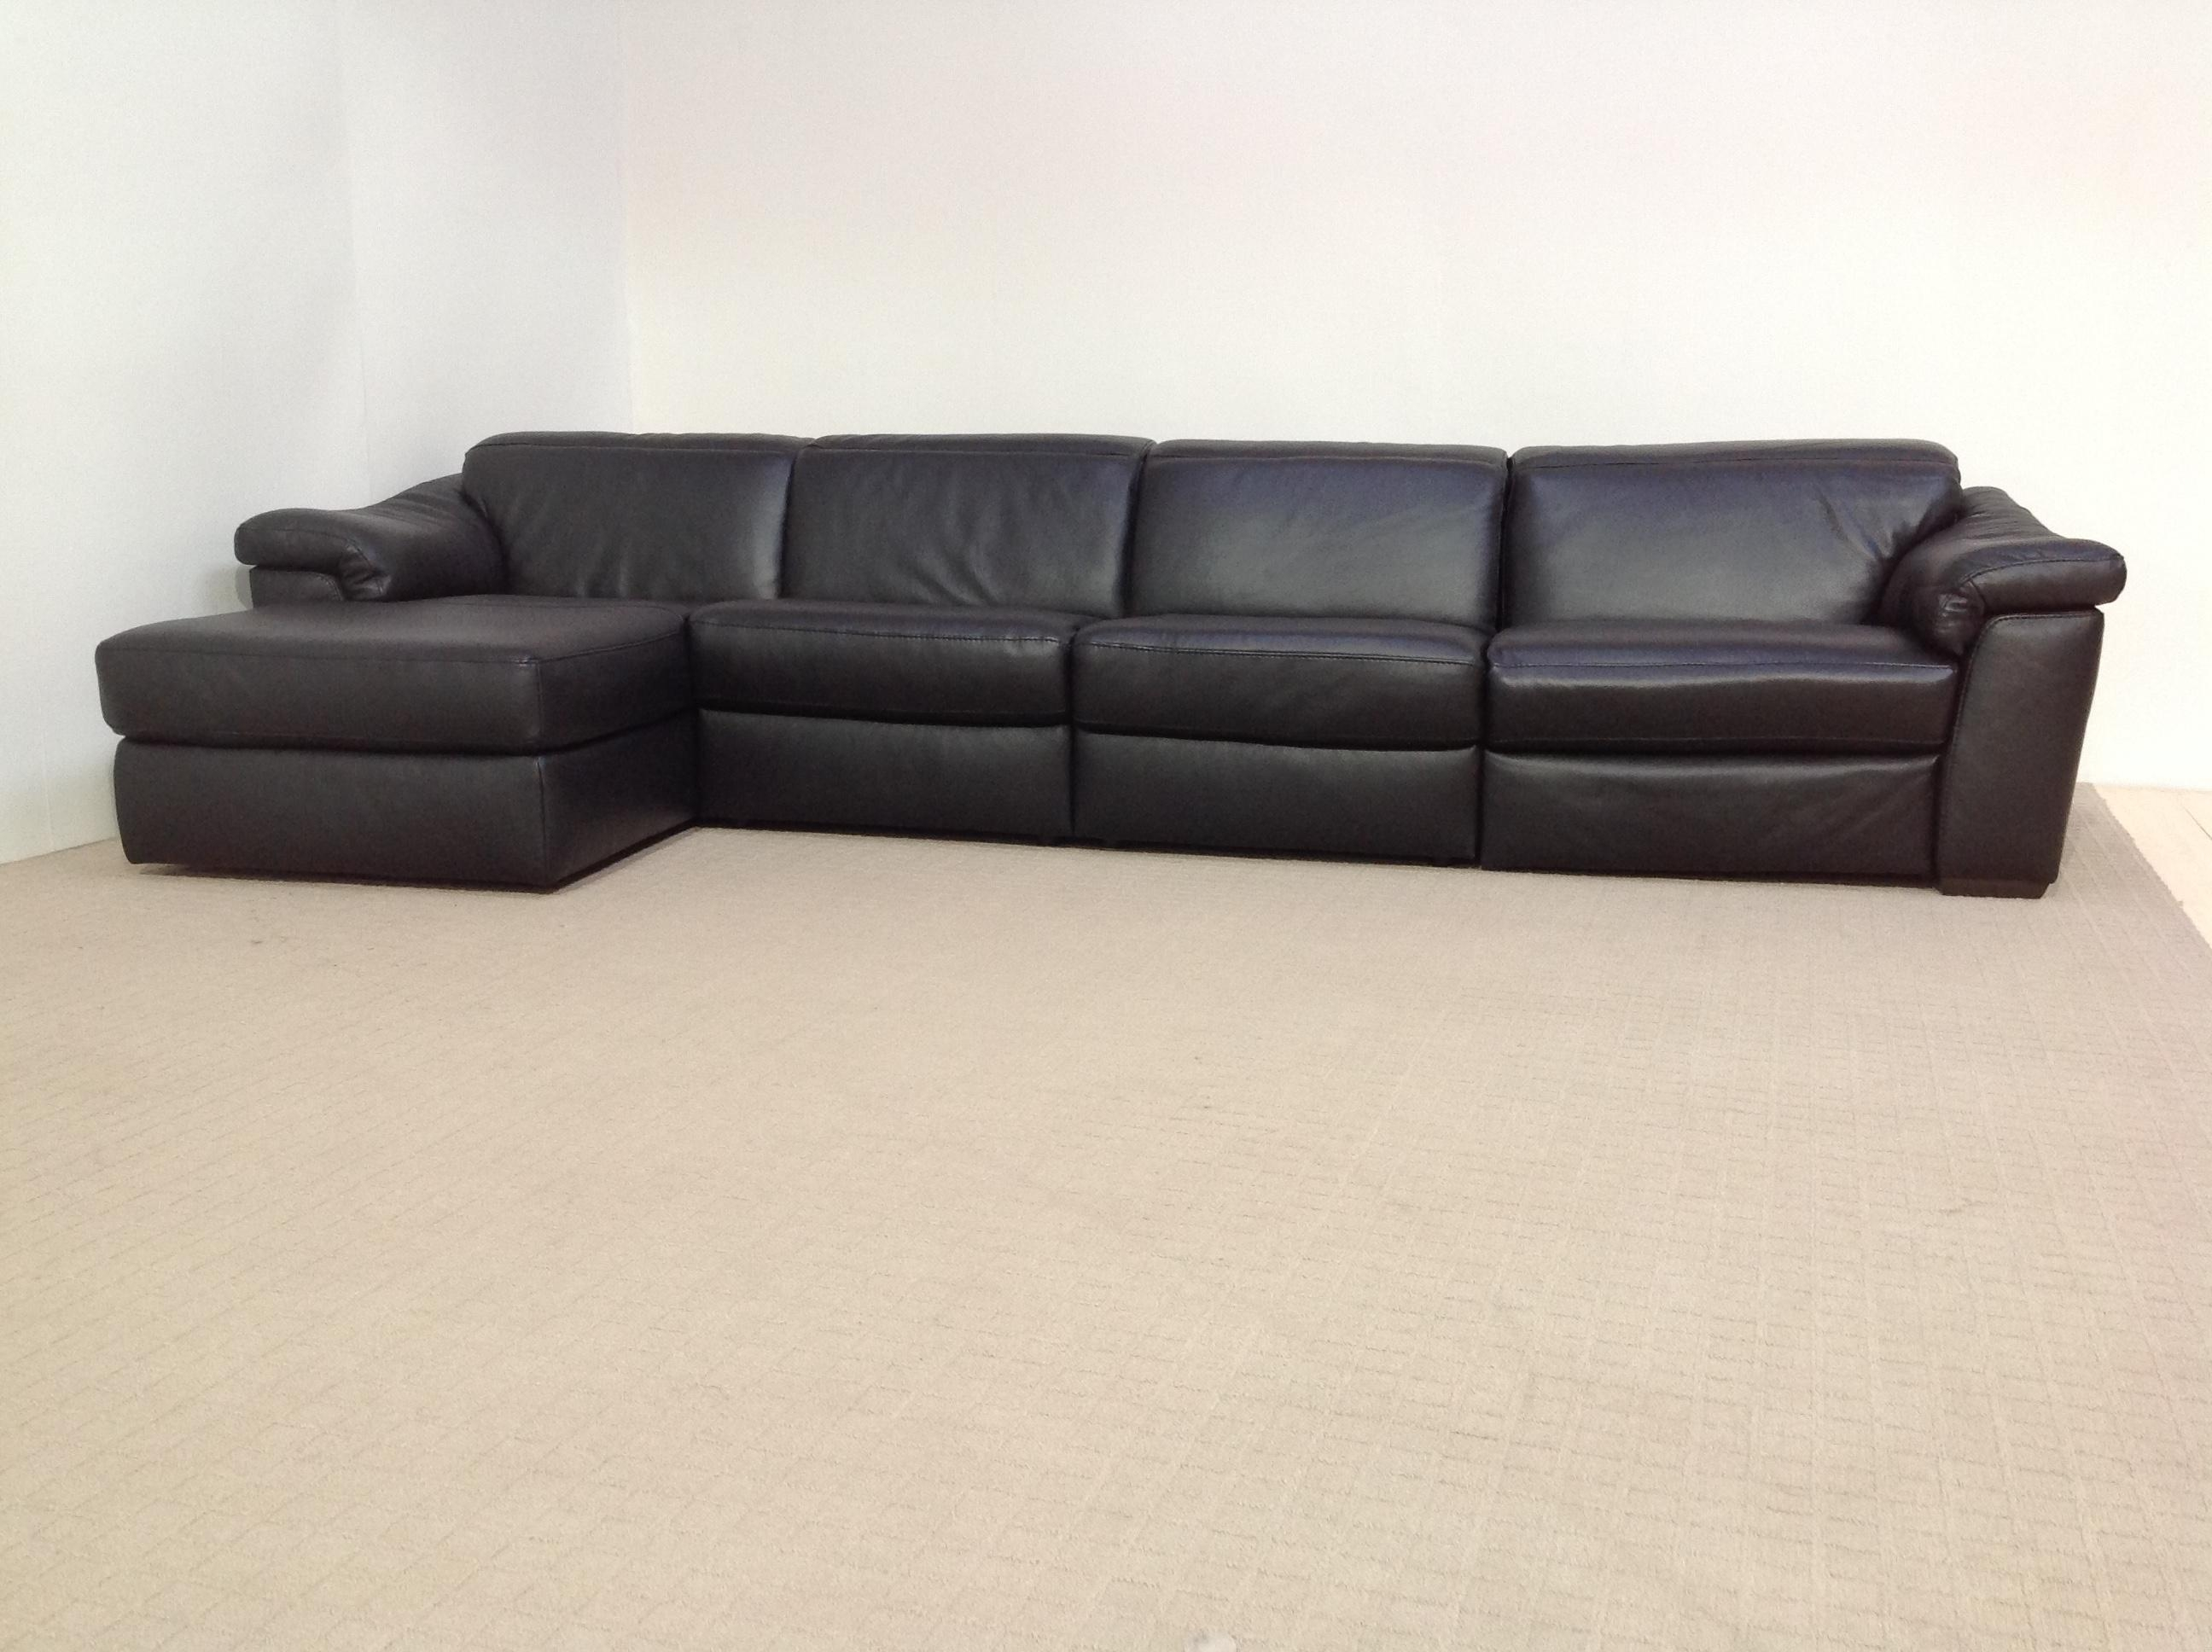 4 Seater Leather Sofas 33 With 4 Seater Leather Sofas Within 4 Seat Sofas (Image 1 of 20)